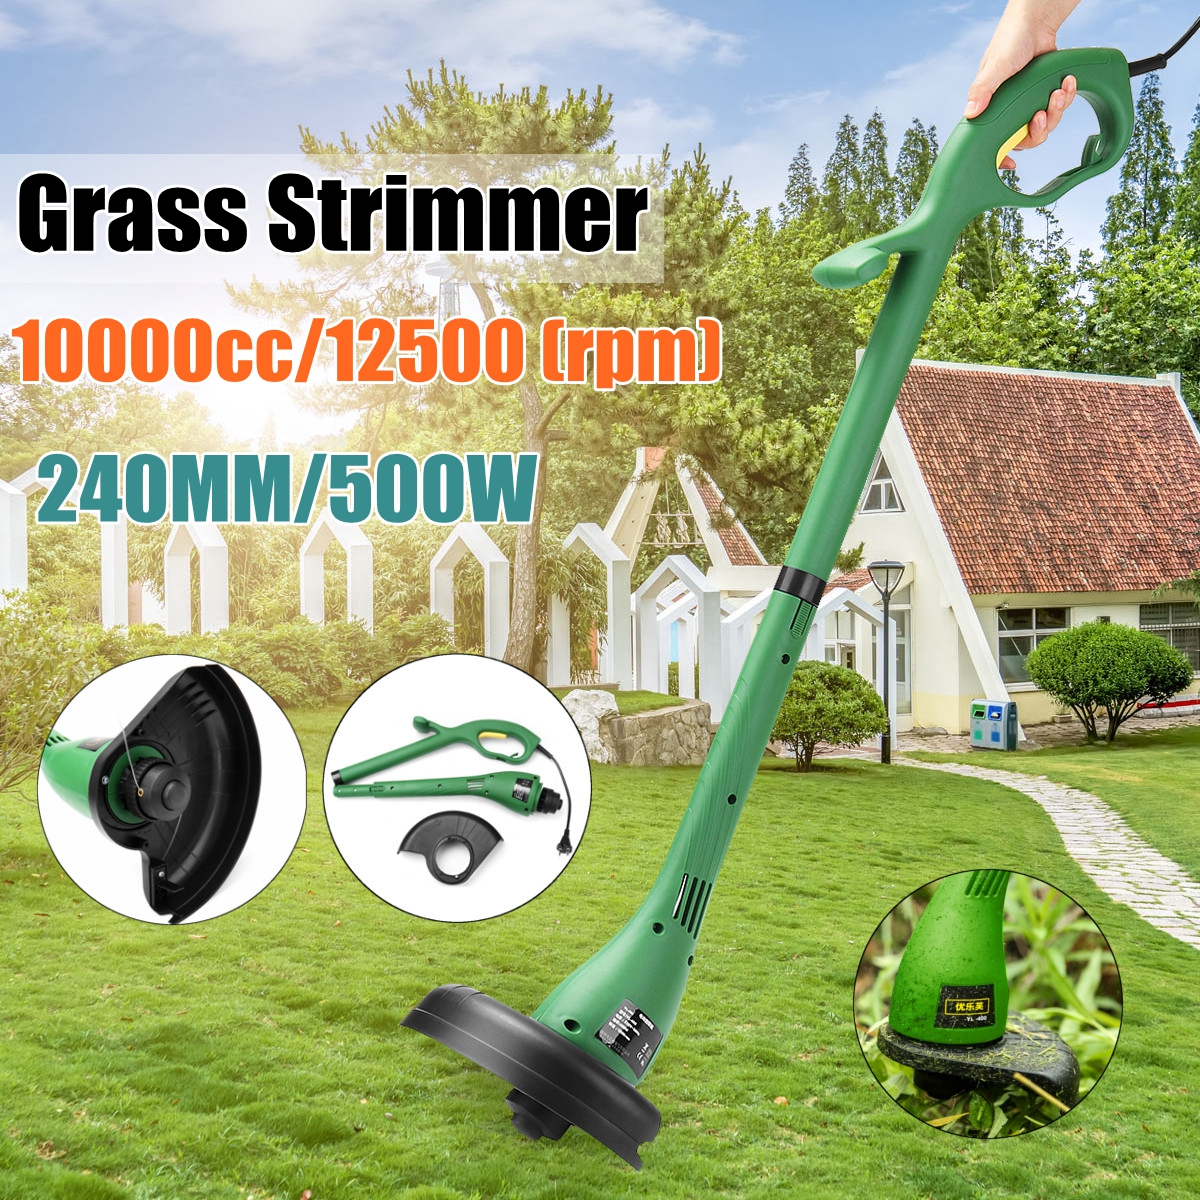 Home Electric Lawn Mower Portable Garden Lawn Mower Weeding Machine Grass Trimmer 500W 12500 rpm/min Courtyard Pruning Tools mower lawn cut irrigation mower rice machine parts rotary cutters grass control